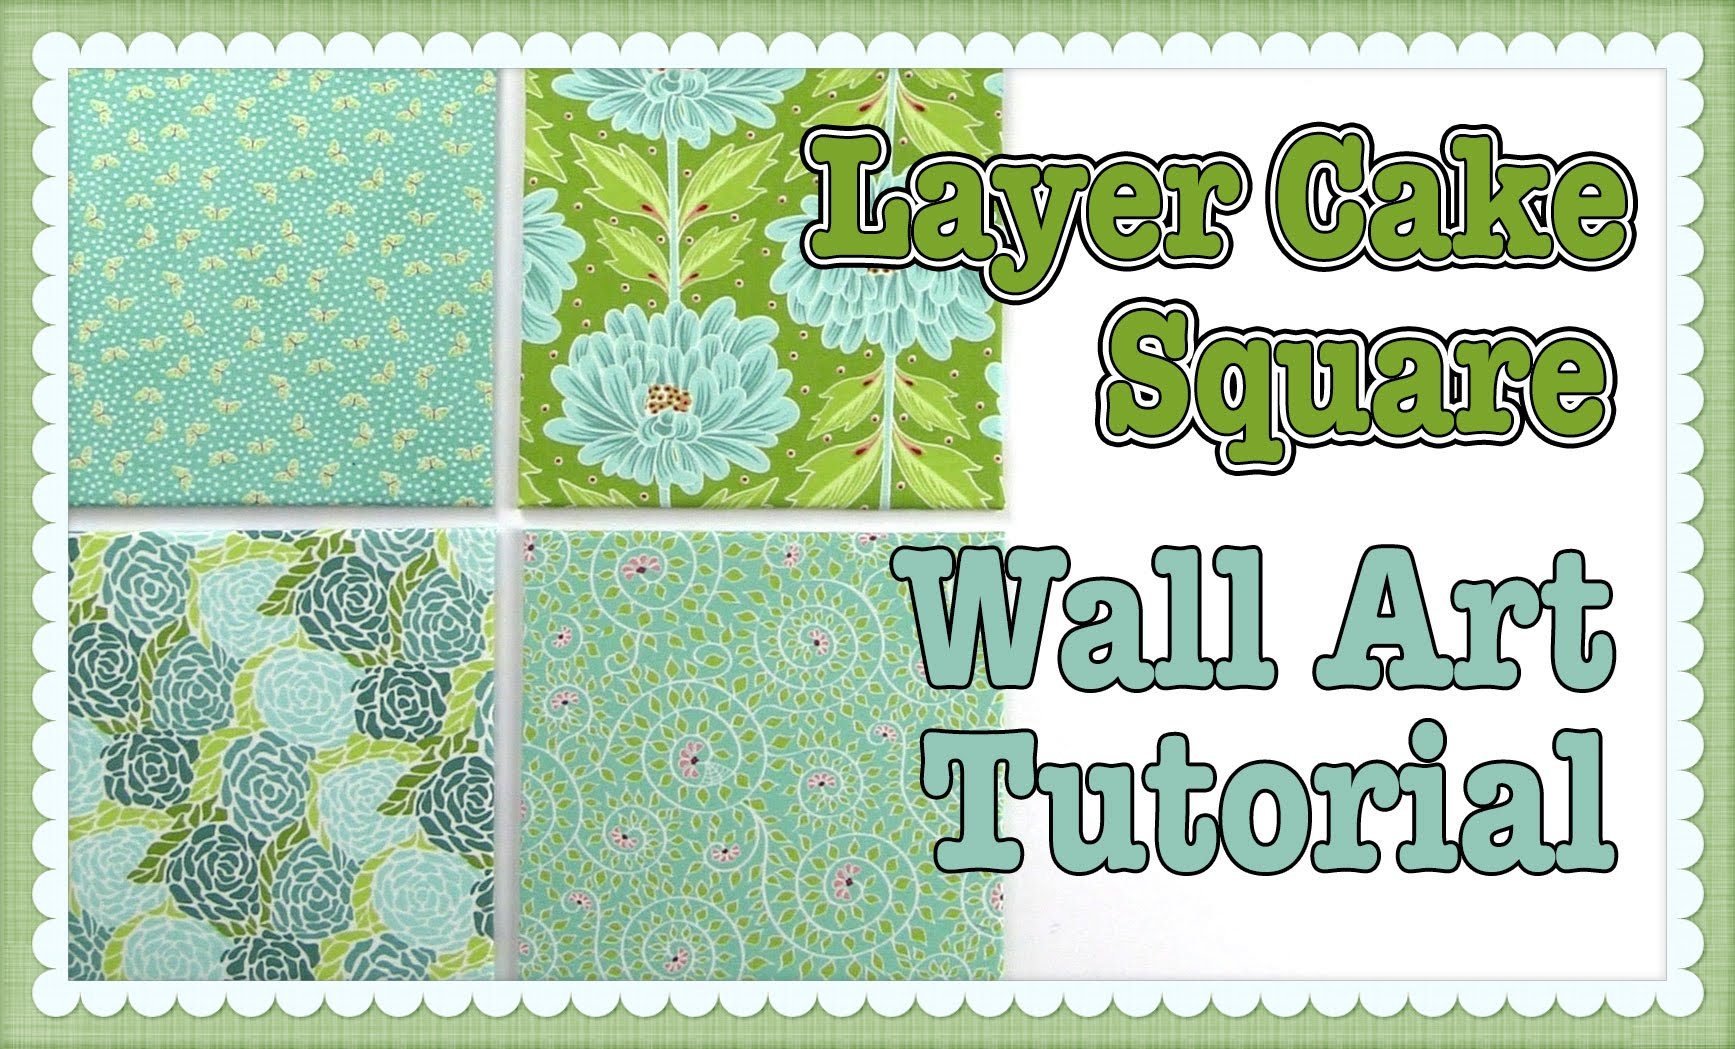 layer cake wall art - no sewing required